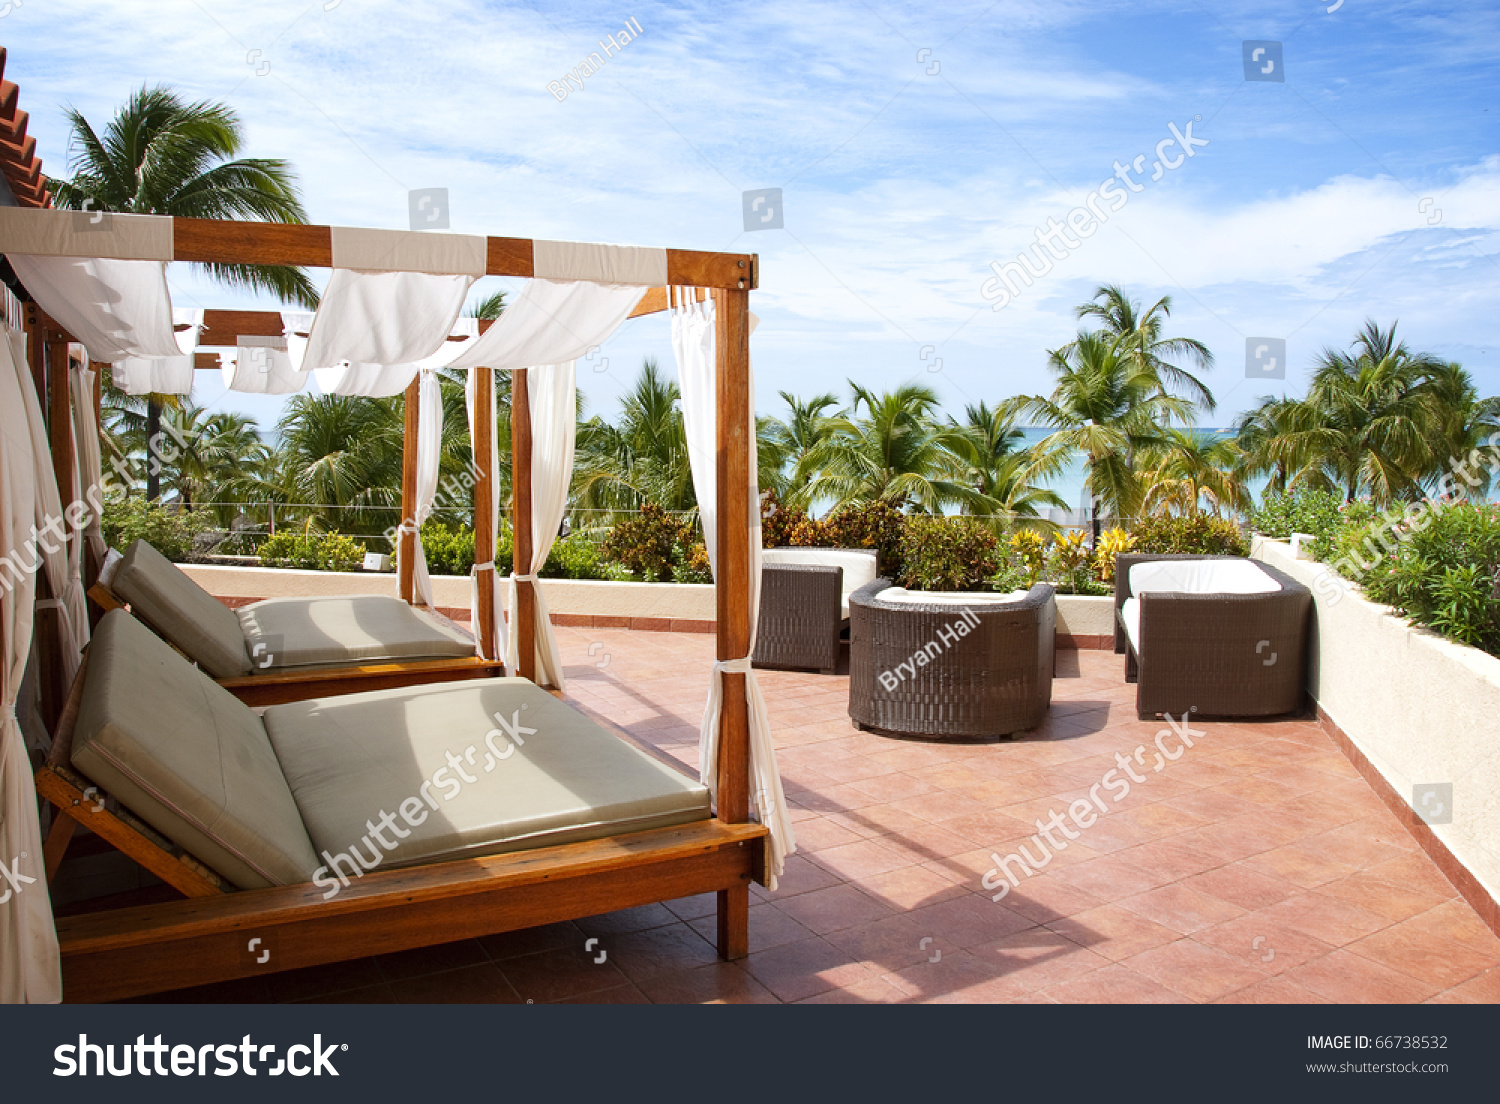 Outdoor Cabana outdoor cabana beds on rooftop overlooking stock photo 66738532